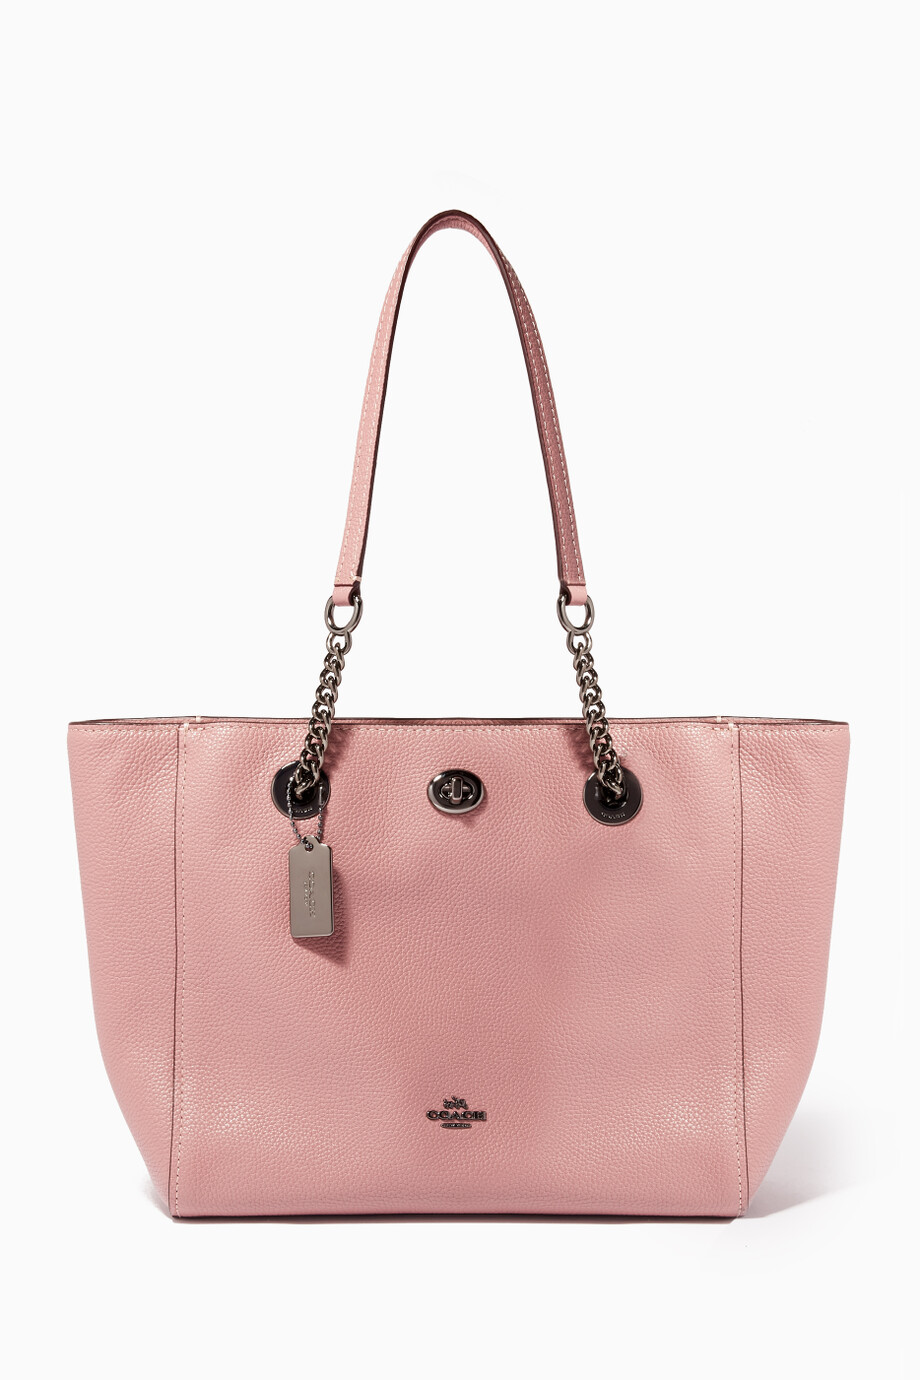 00be7464d Shop Coach Pink Pink Turnlock Chain 27 Tote Bag for Women | Ounass